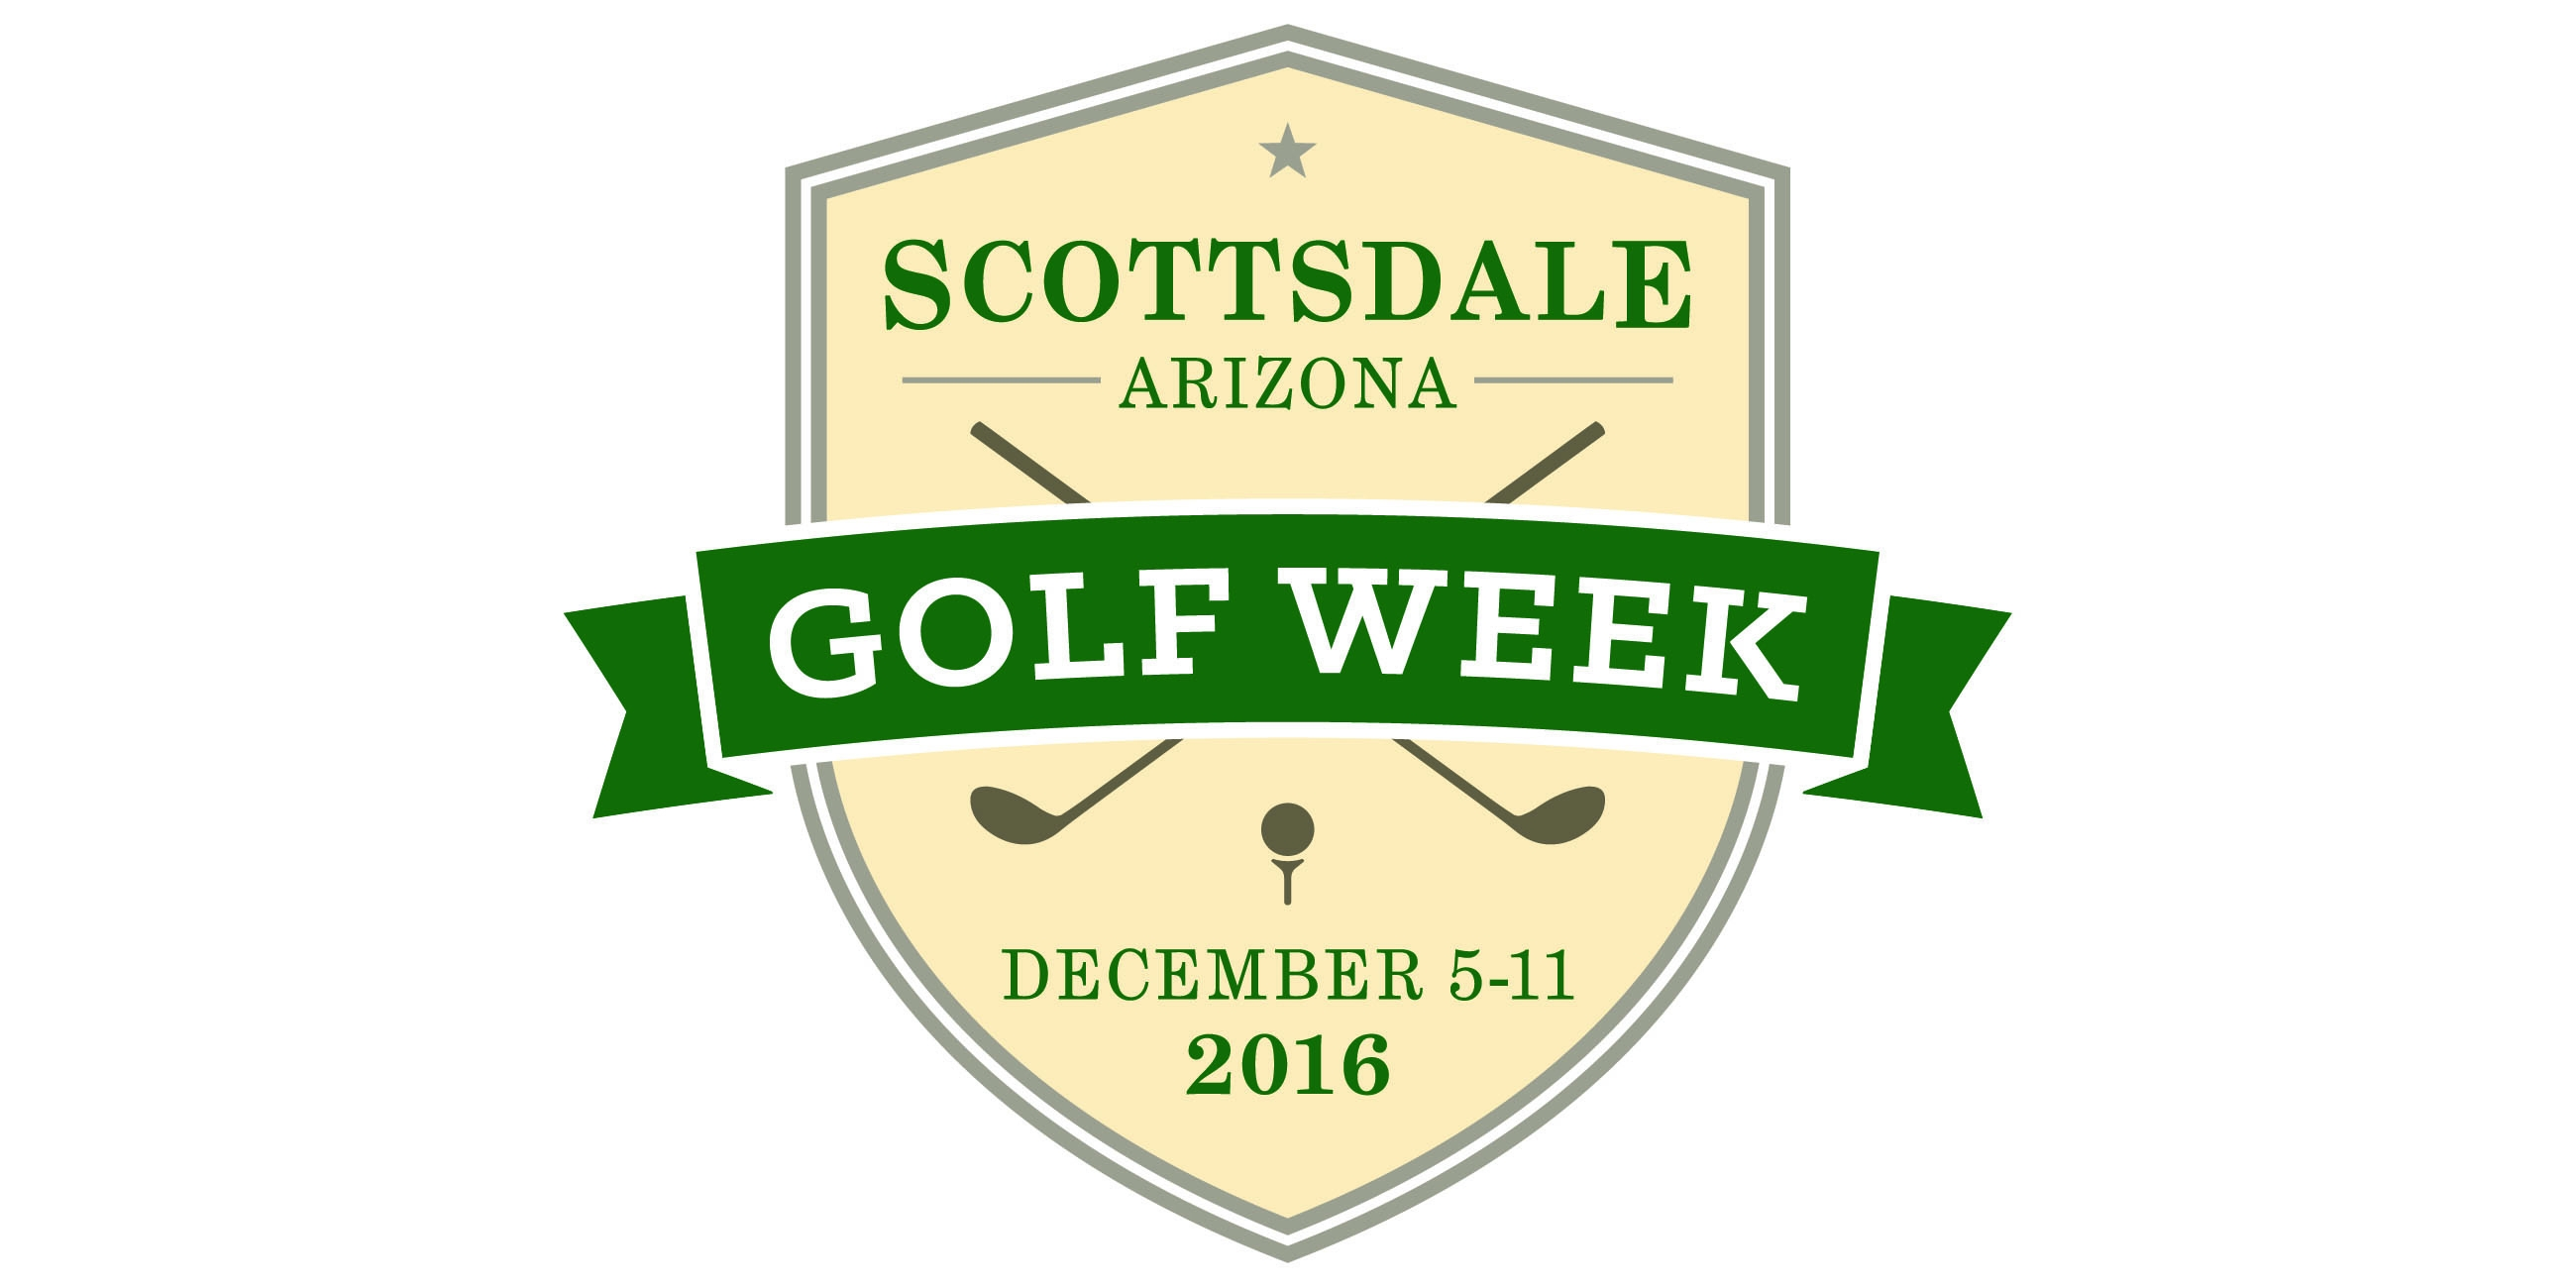 Golf-themed event will include competitions and clinics at local courses  SCOTTSDALE 1587639cada3